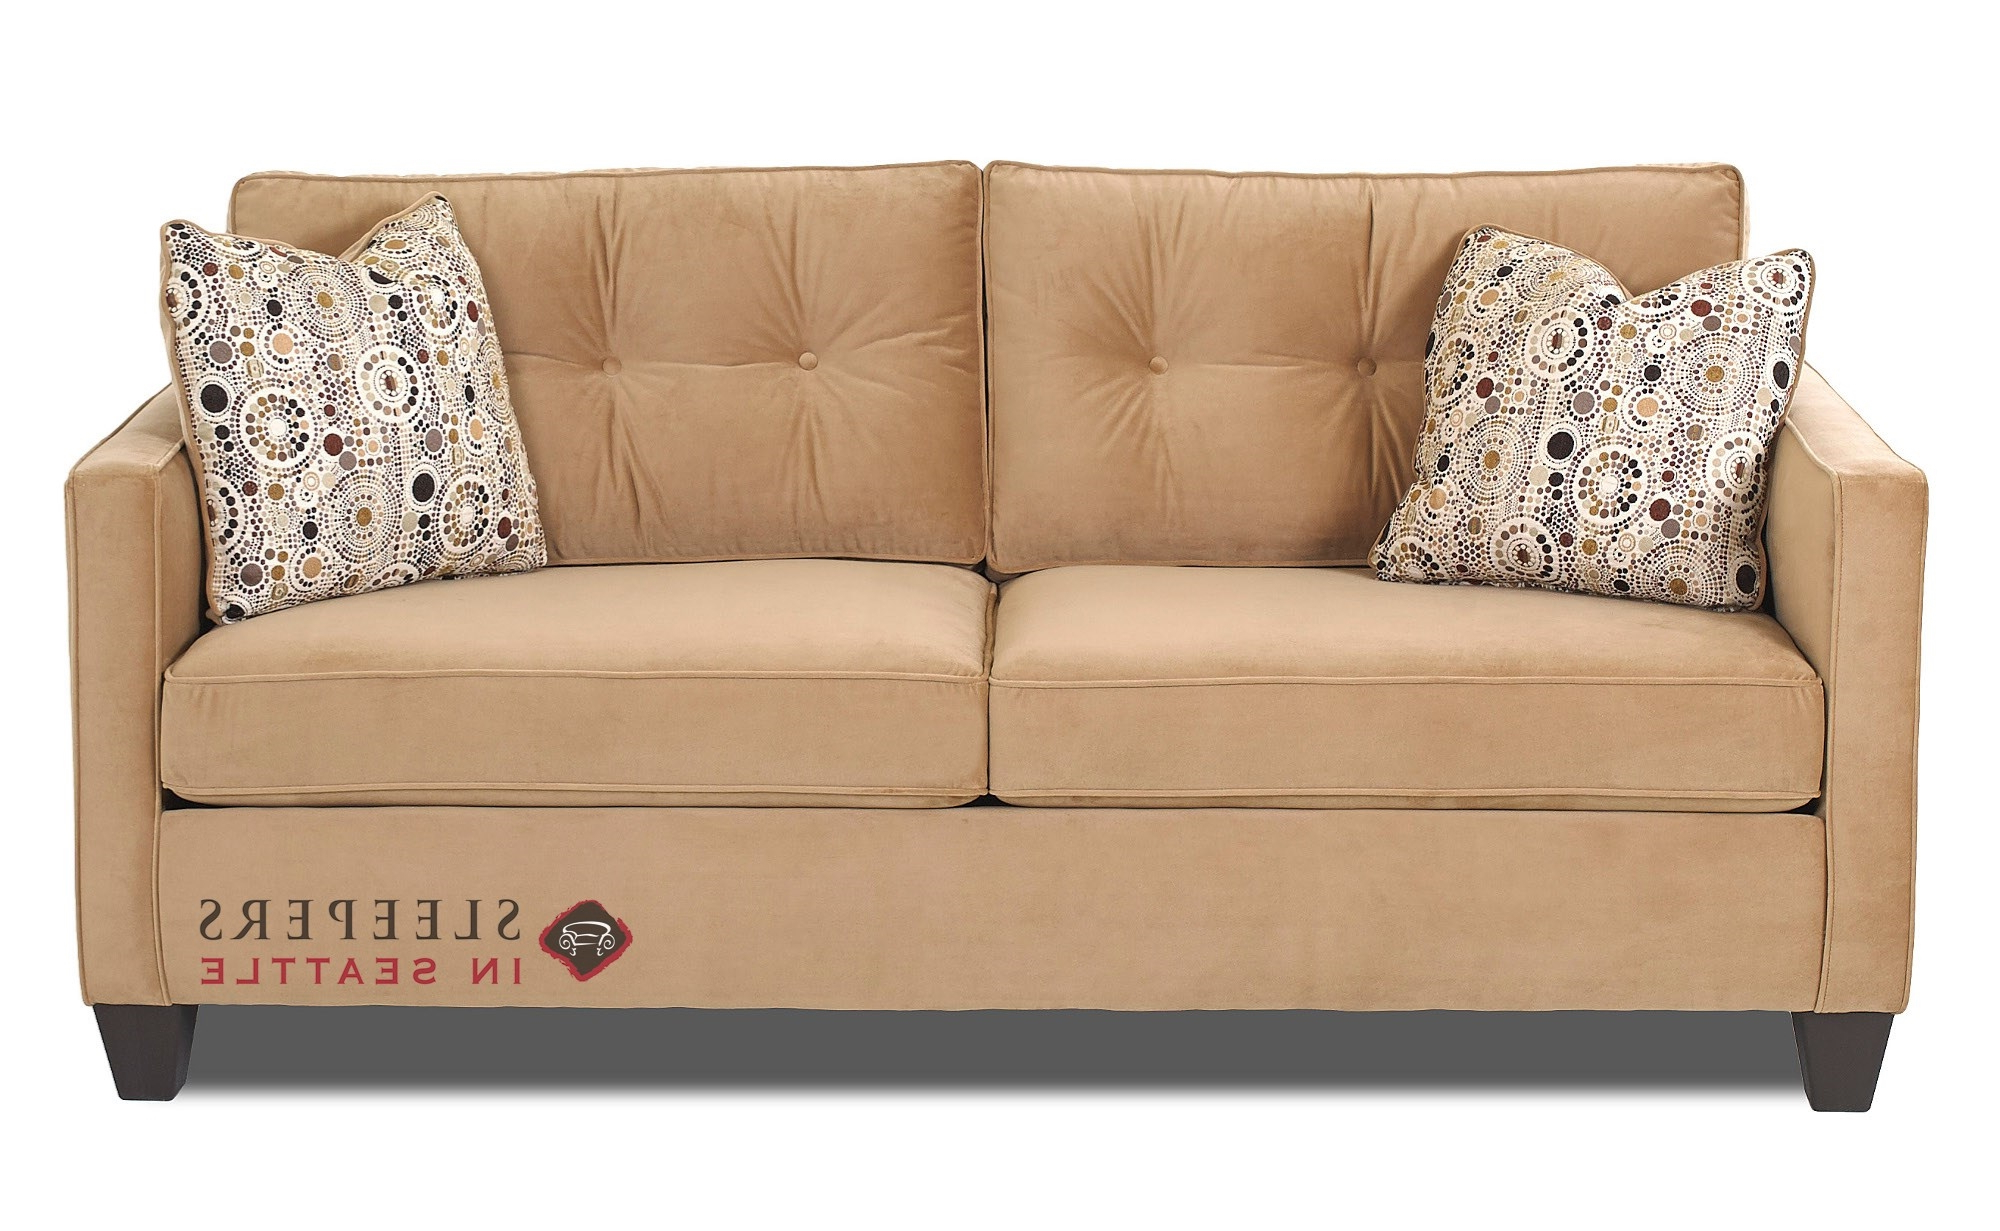 Widely Used Savvy Bristol Queen Sleeper Sofa With Bristol Loveseats With Cushions (View 20 of 20)